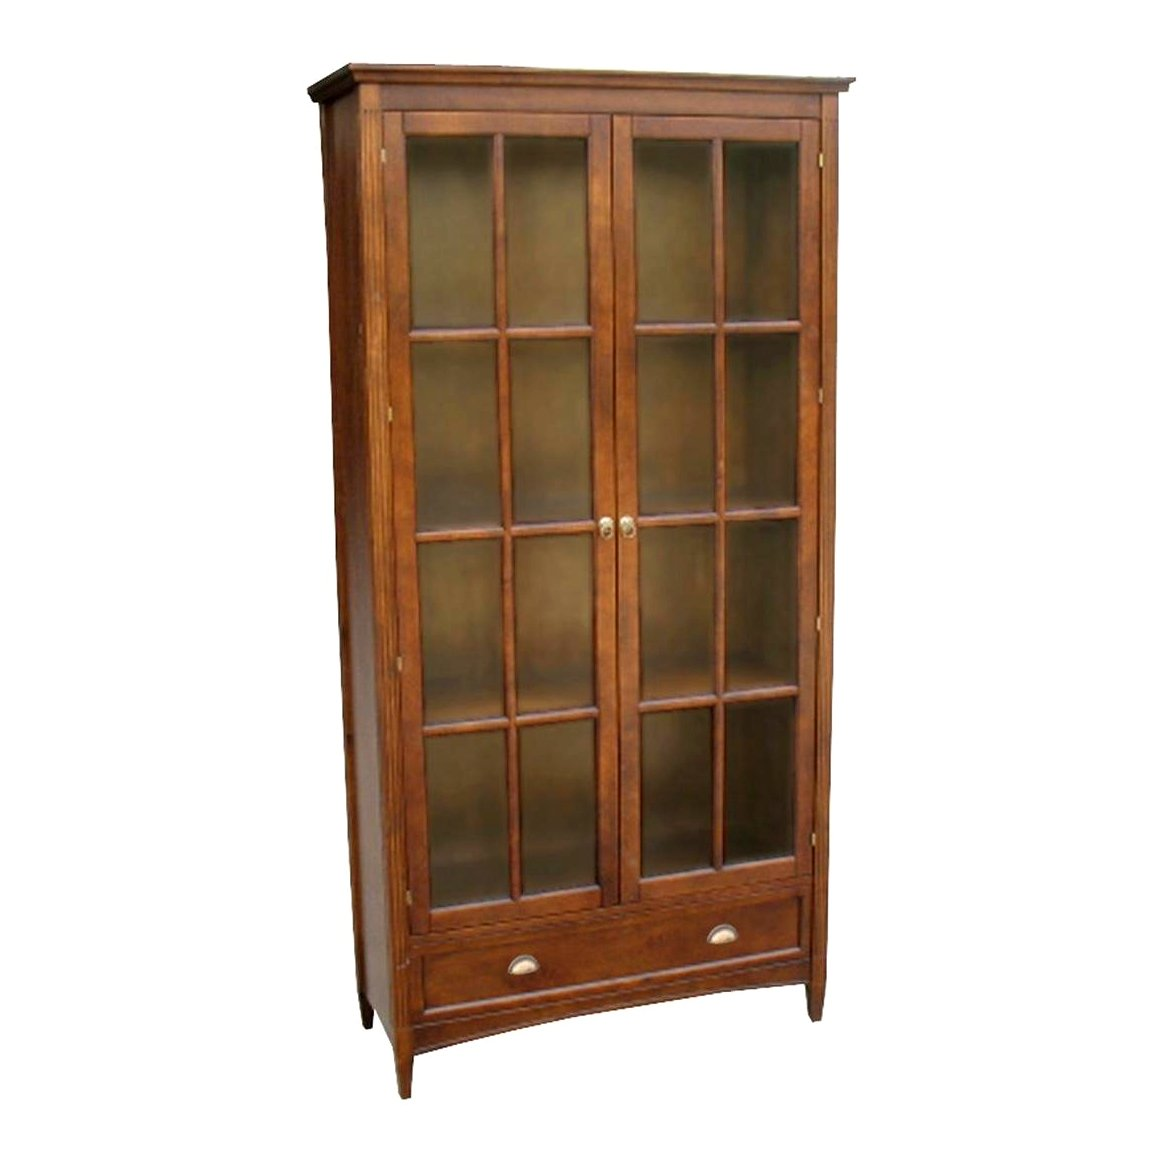 Image of: Tall Bookcases with Doors